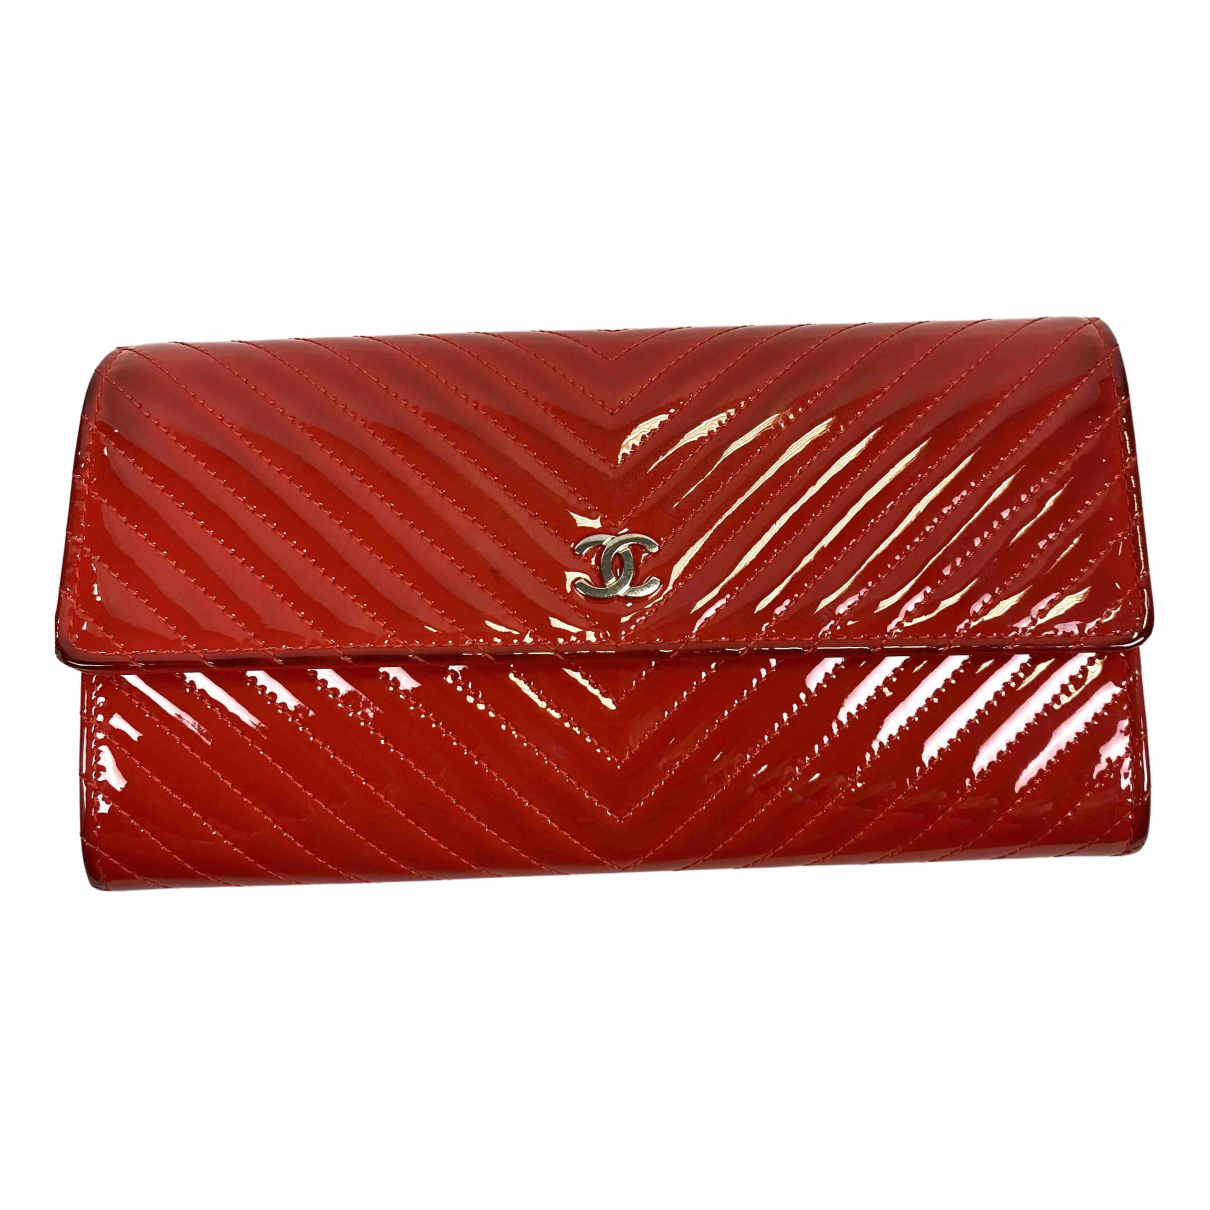 Chanel N Red Patent leather wallet for Women N